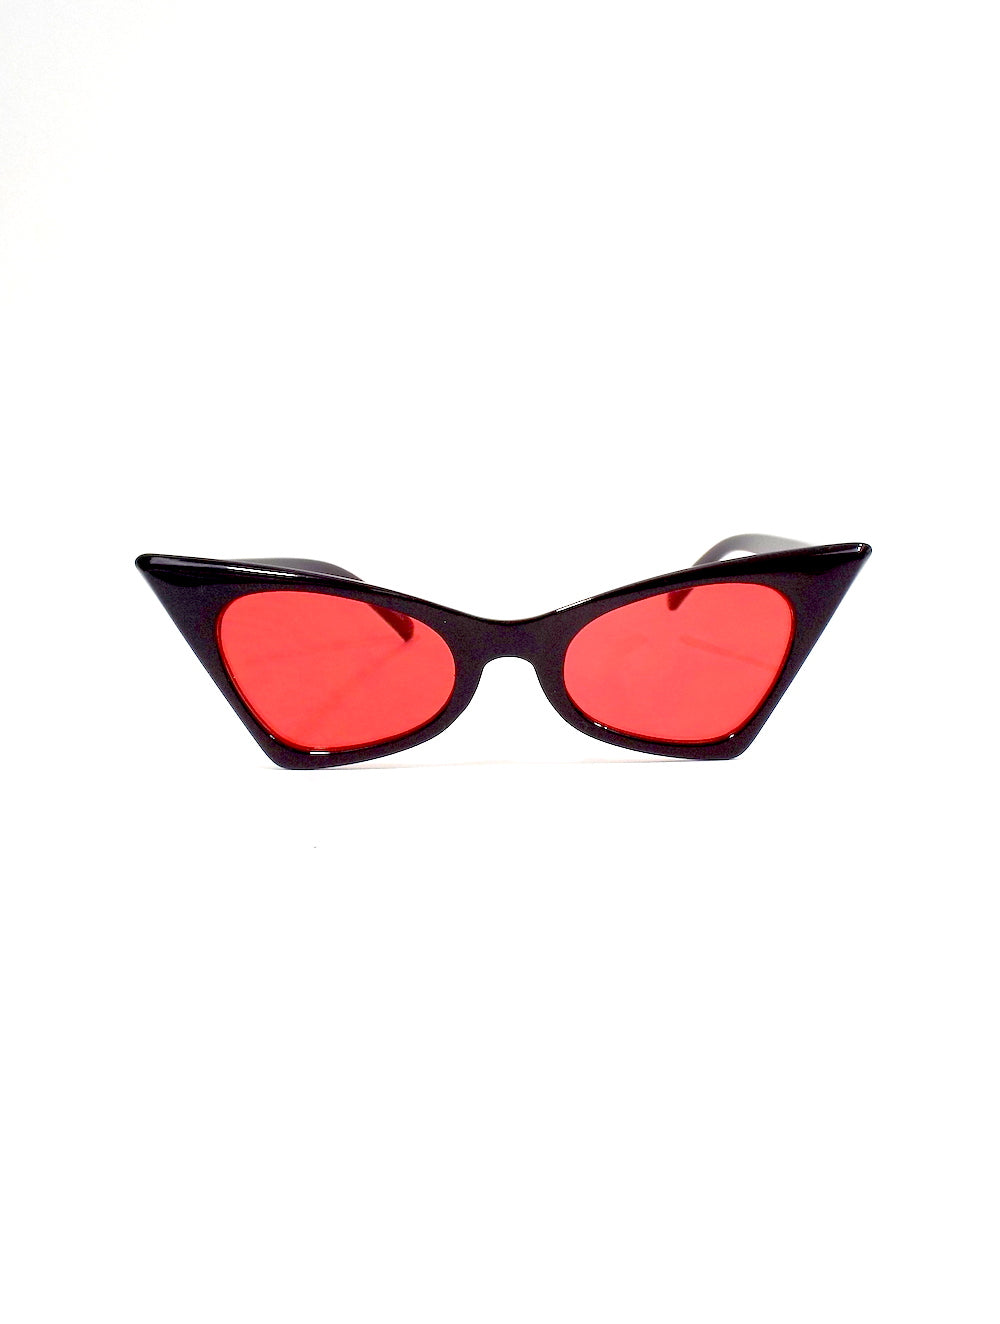 Donna Cat Eye Sunglasses - Black and Red